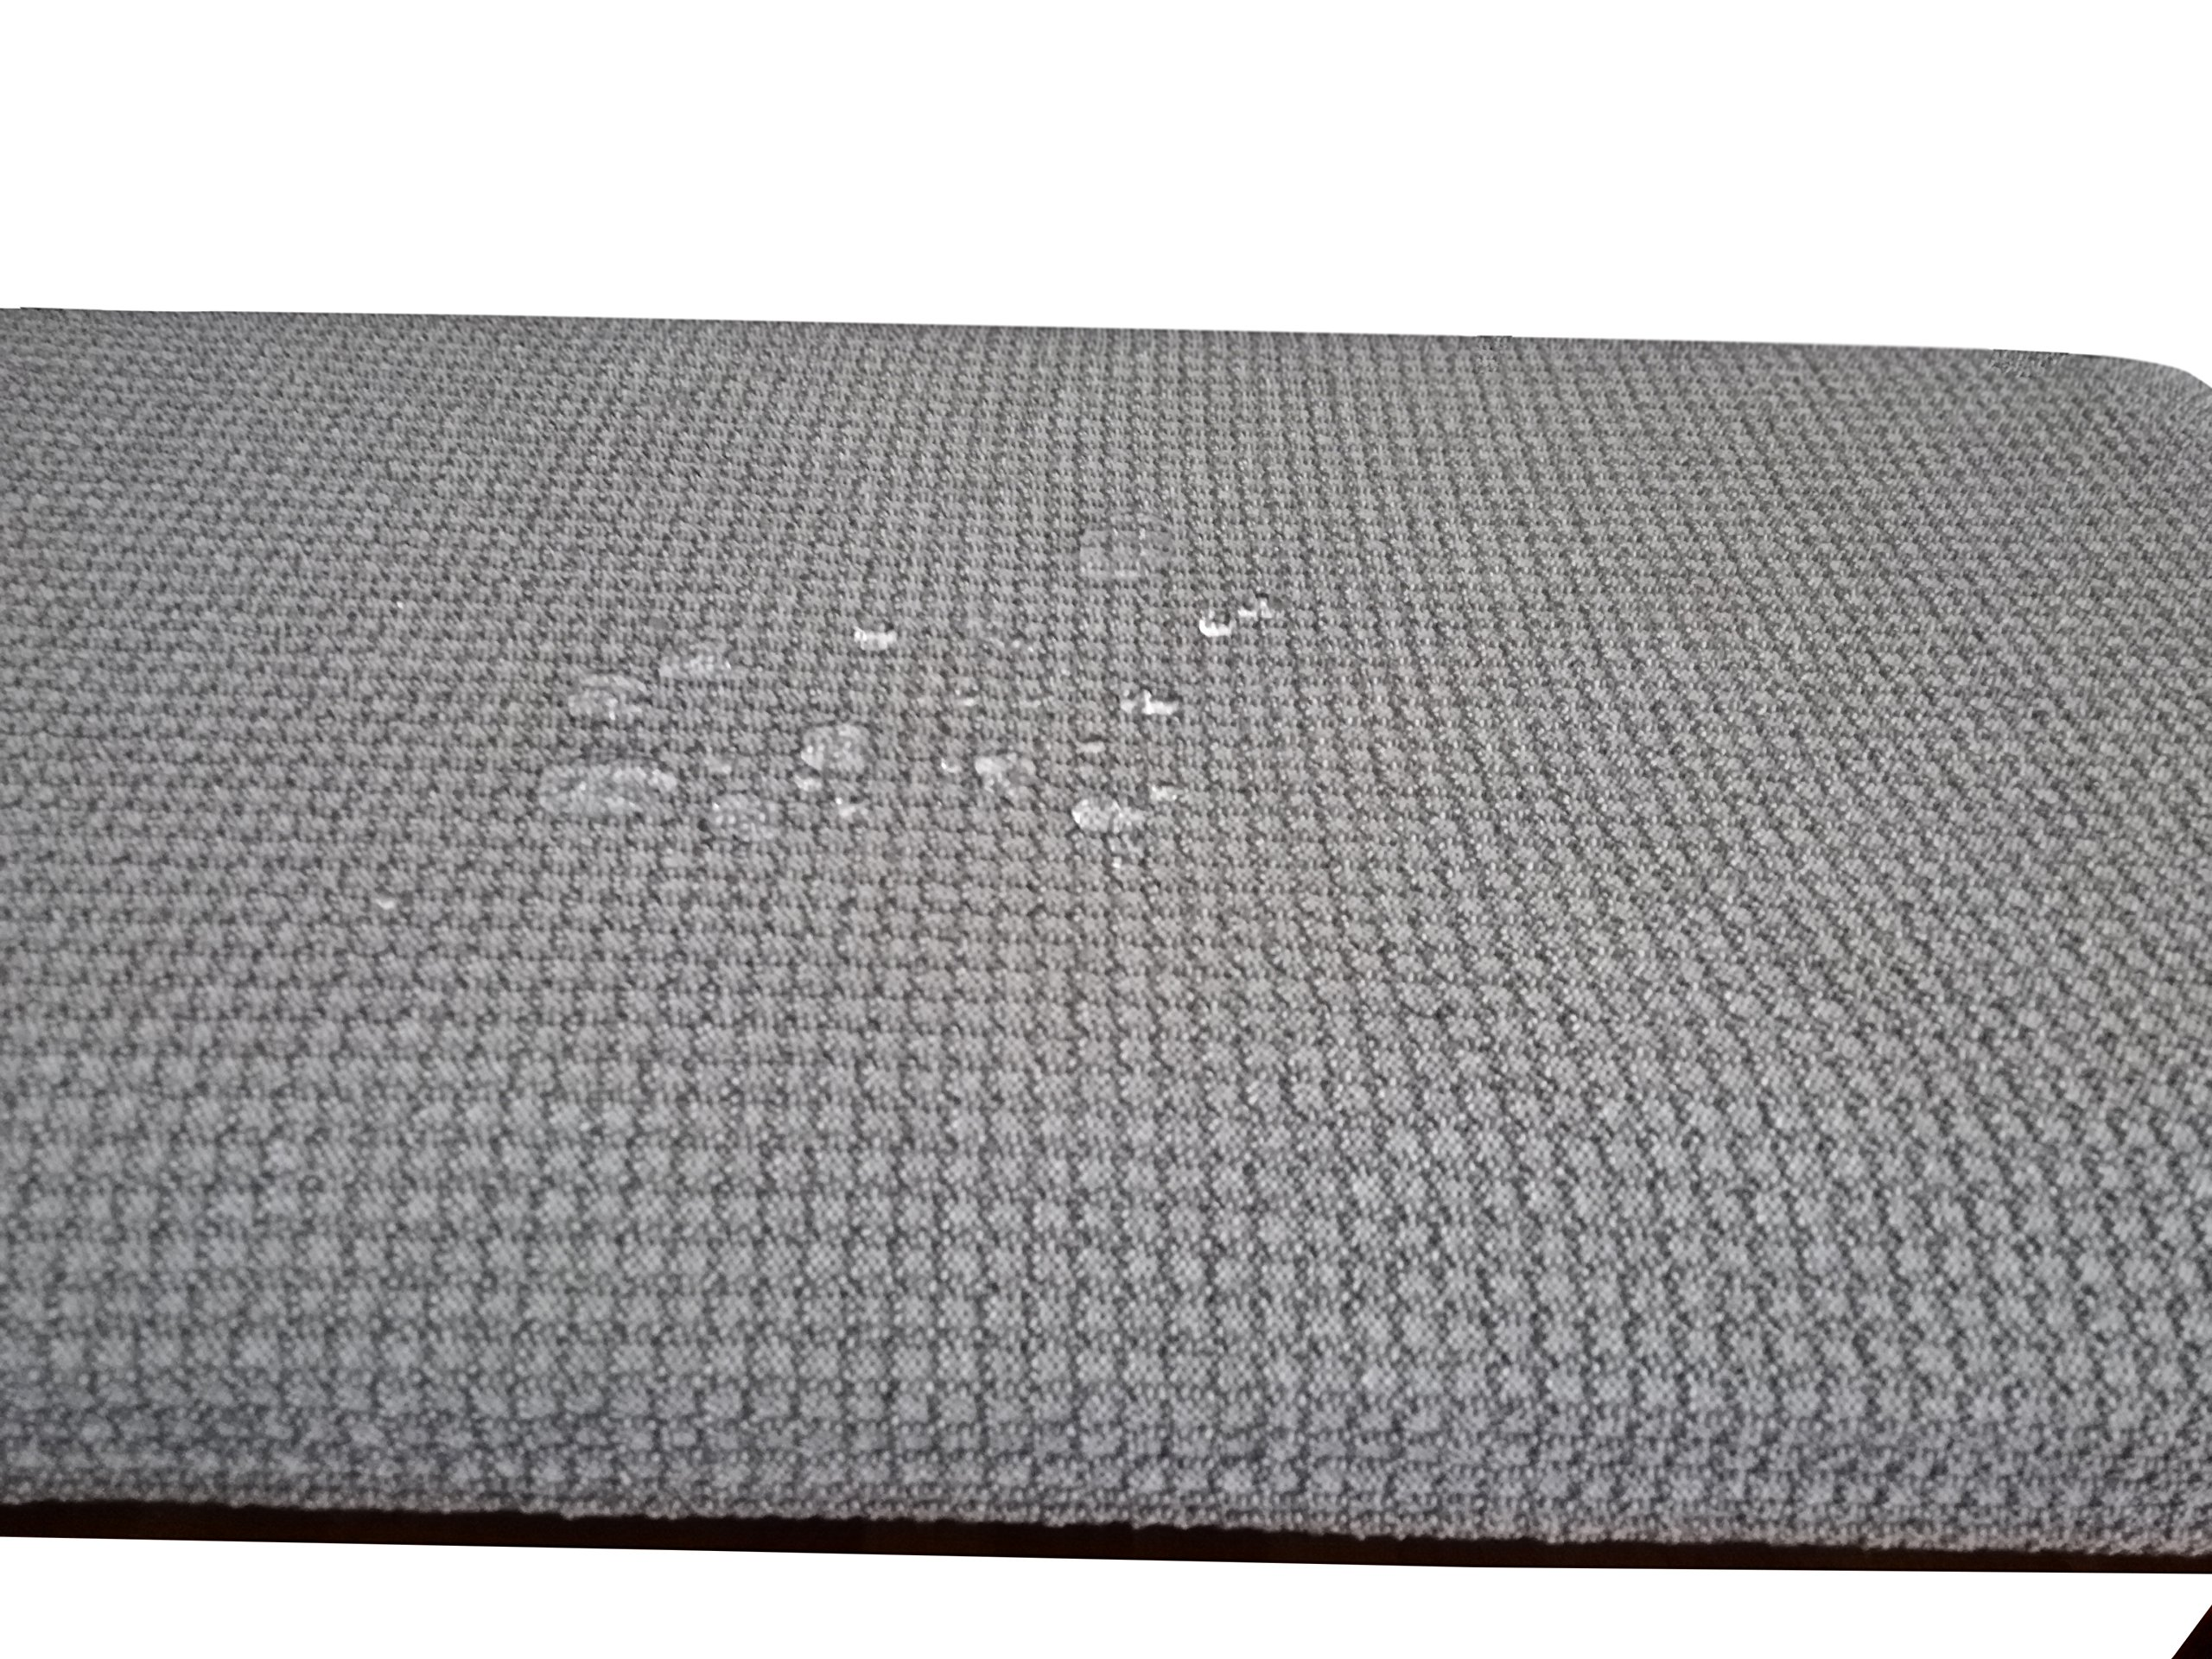 Waterproof Piano Bench Cover Protector - Perfect For Pets, Kids, Elderly, Wedding, Party - Machine Washable, Elastic, Removable,Many Color Choices, Clean the Mess Easily(Grey) by Qualitrusty (Image #5)